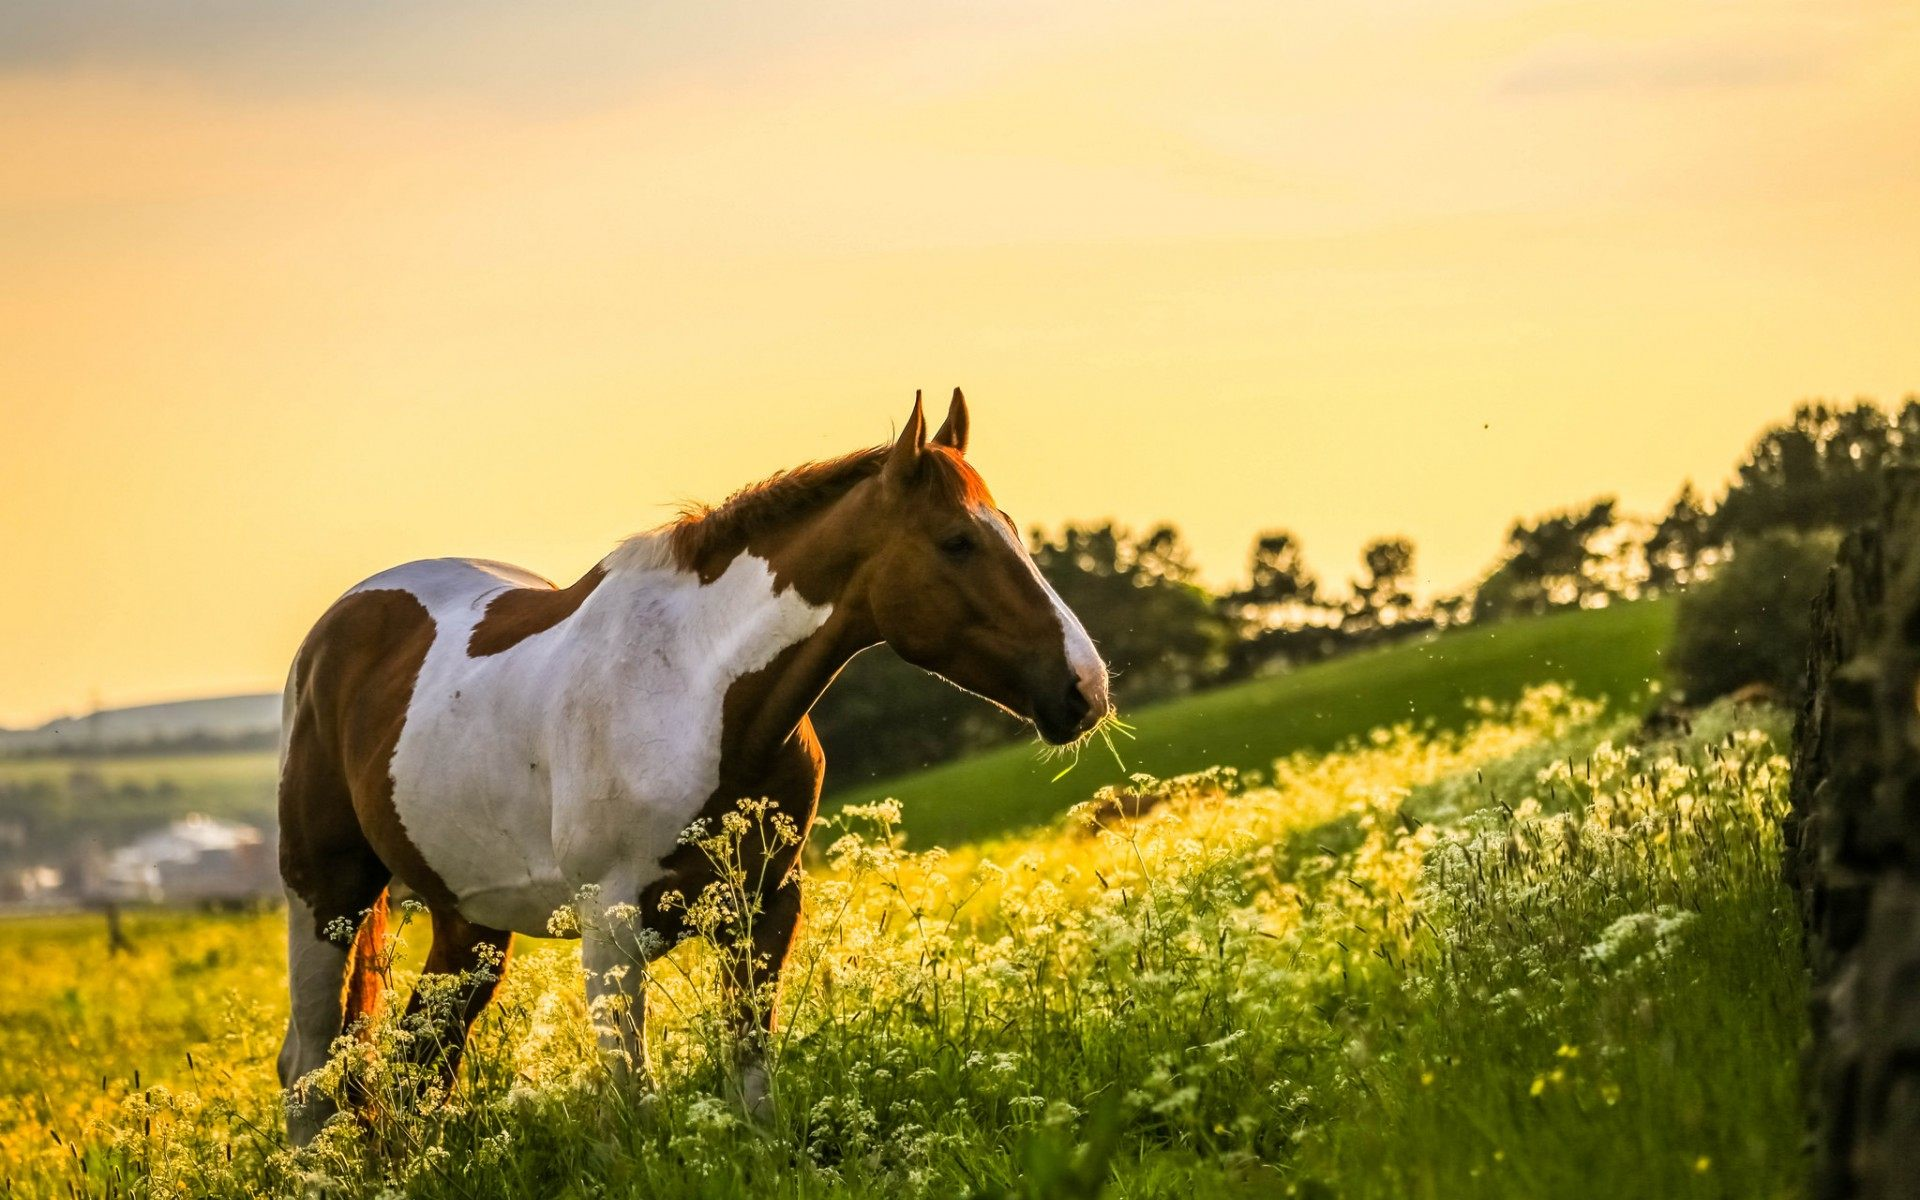 Horses Wallpapers  Android Apps on Google Play 1920x1200